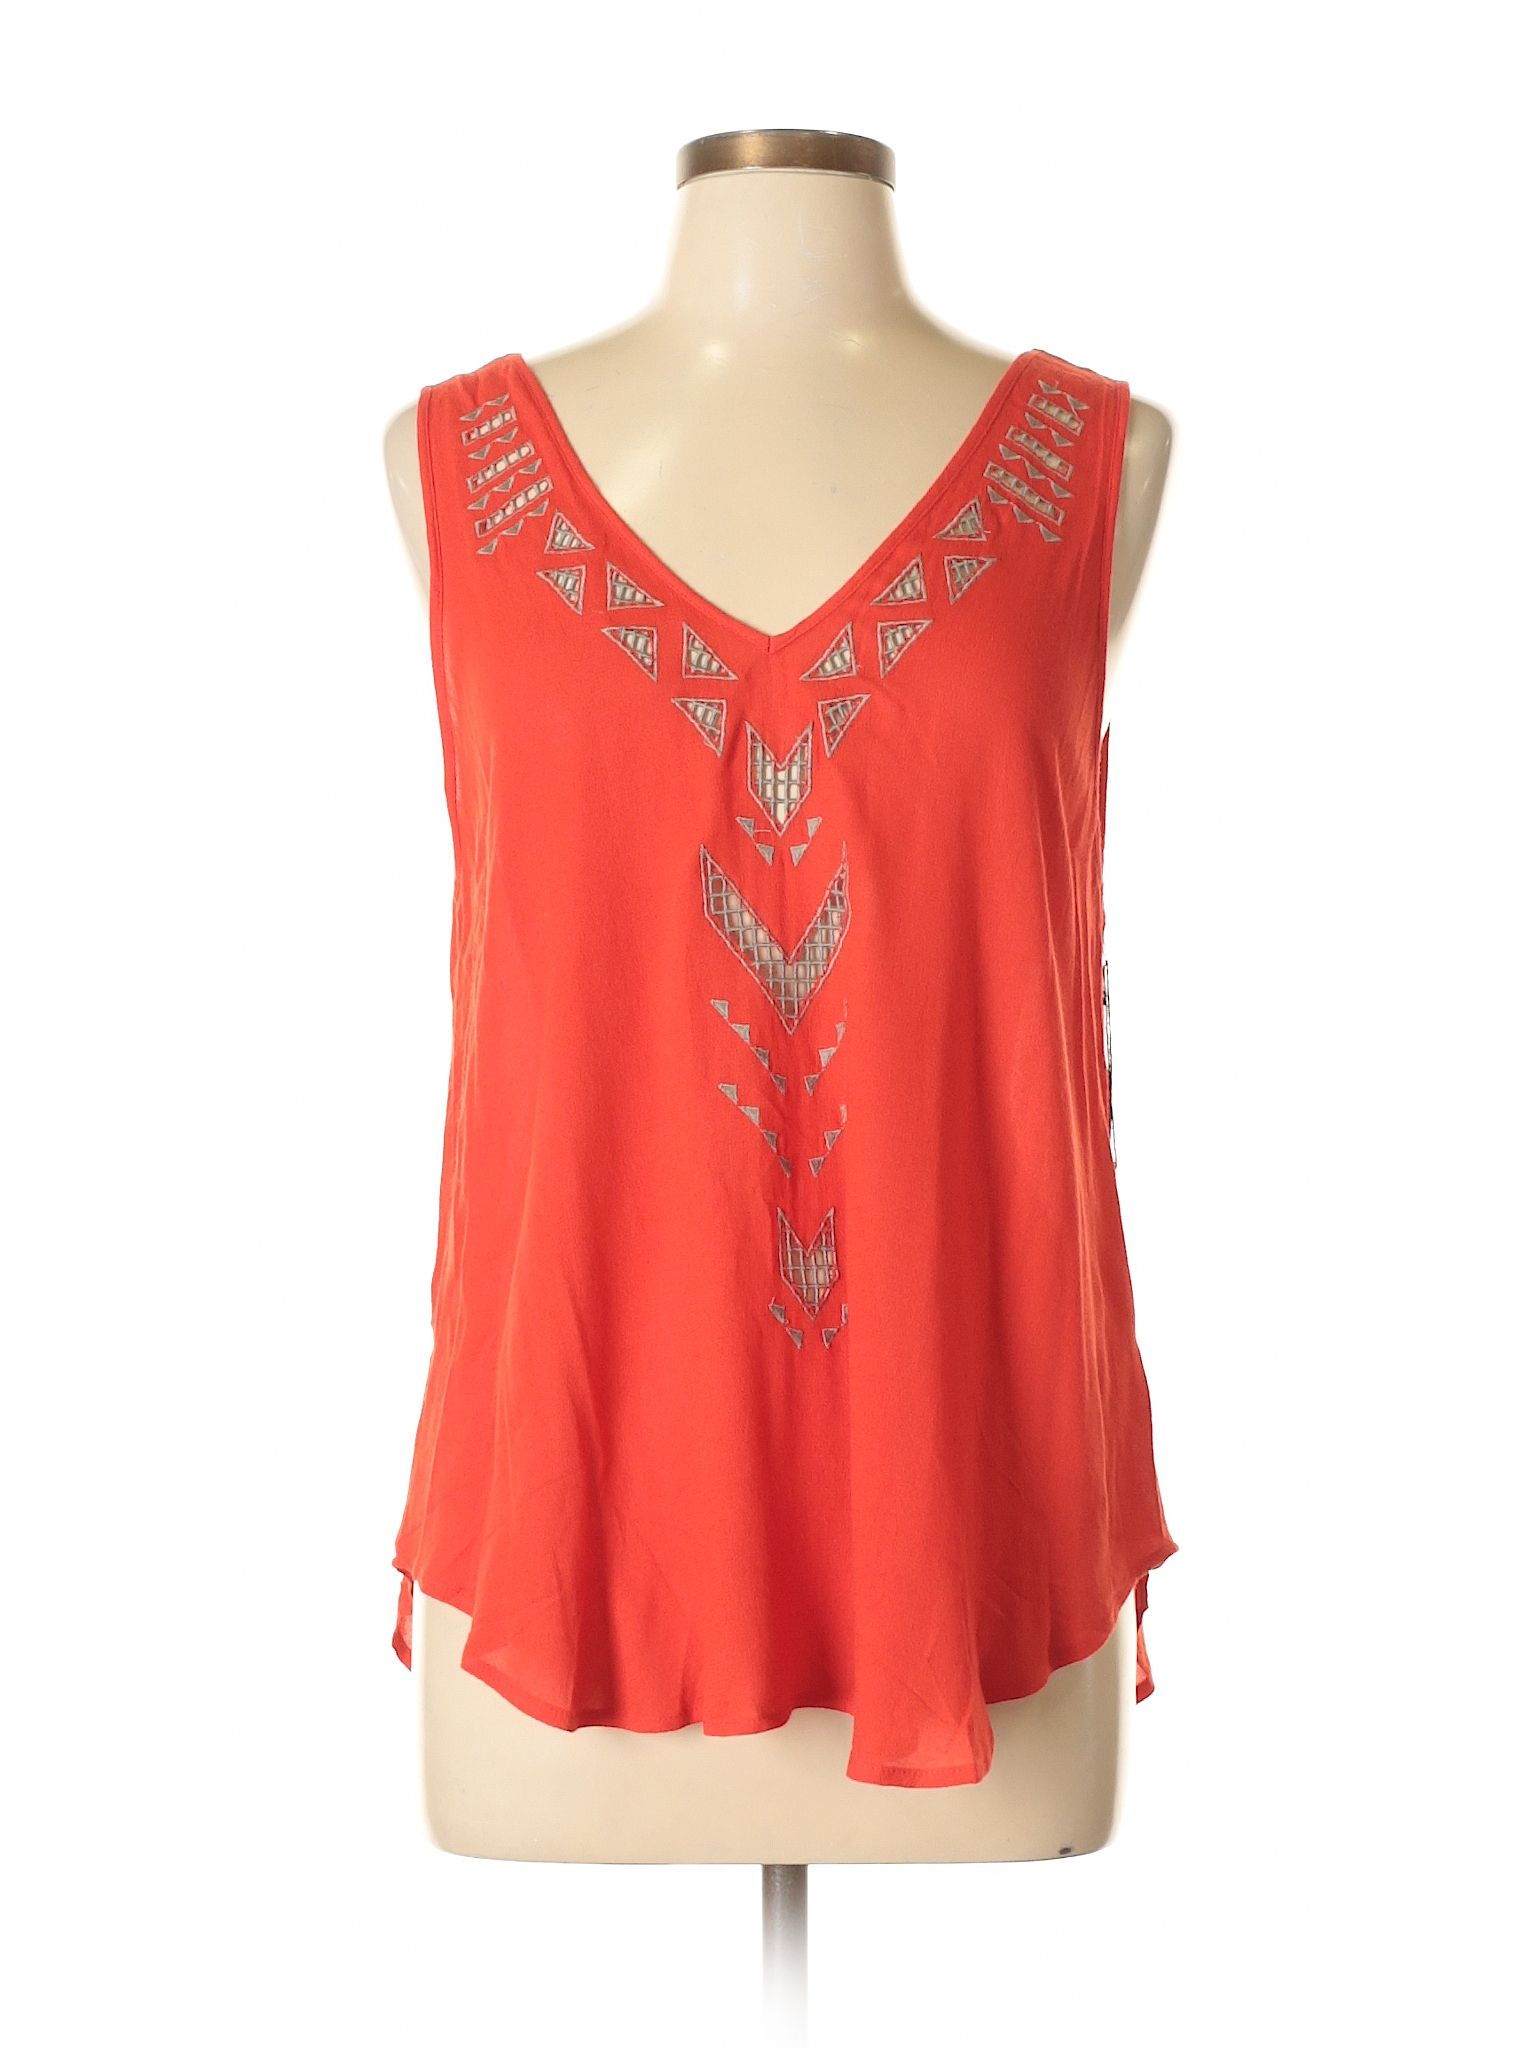 Astr Sleeveless Blouse Size 800 Red Womens Tops  New